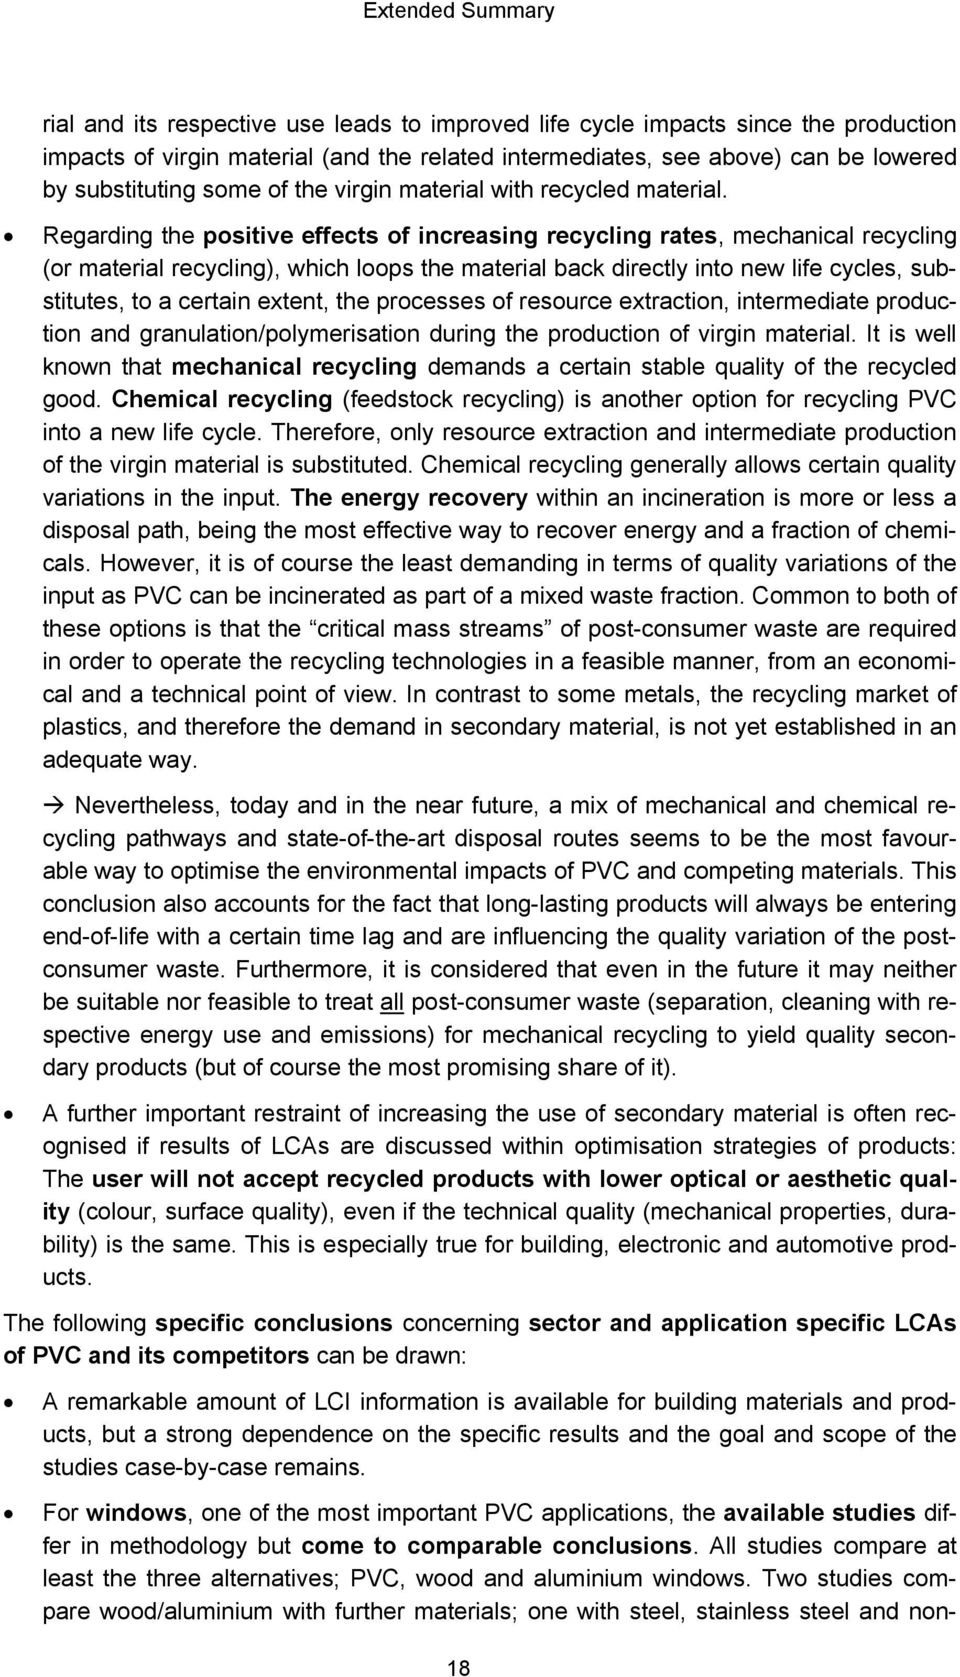 Regarding the positive effects of increasing recycling rates, mechanical recycling (or material recycling), which loops the material back directly into new life cycles, substitutes, to a certain